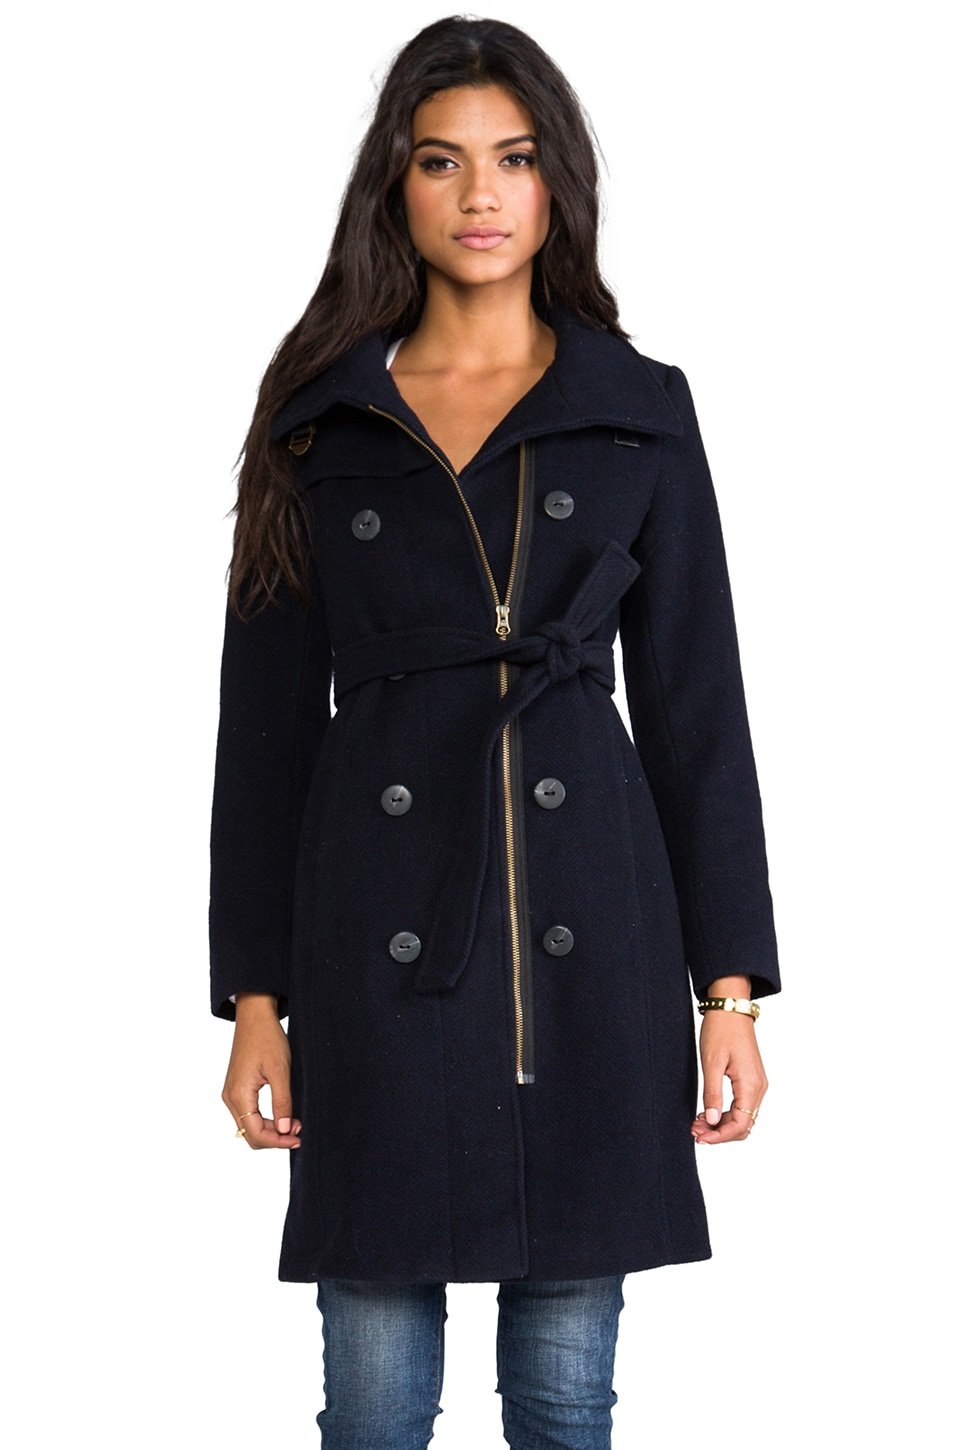 Spiewak Essex Trench in Navy/Black